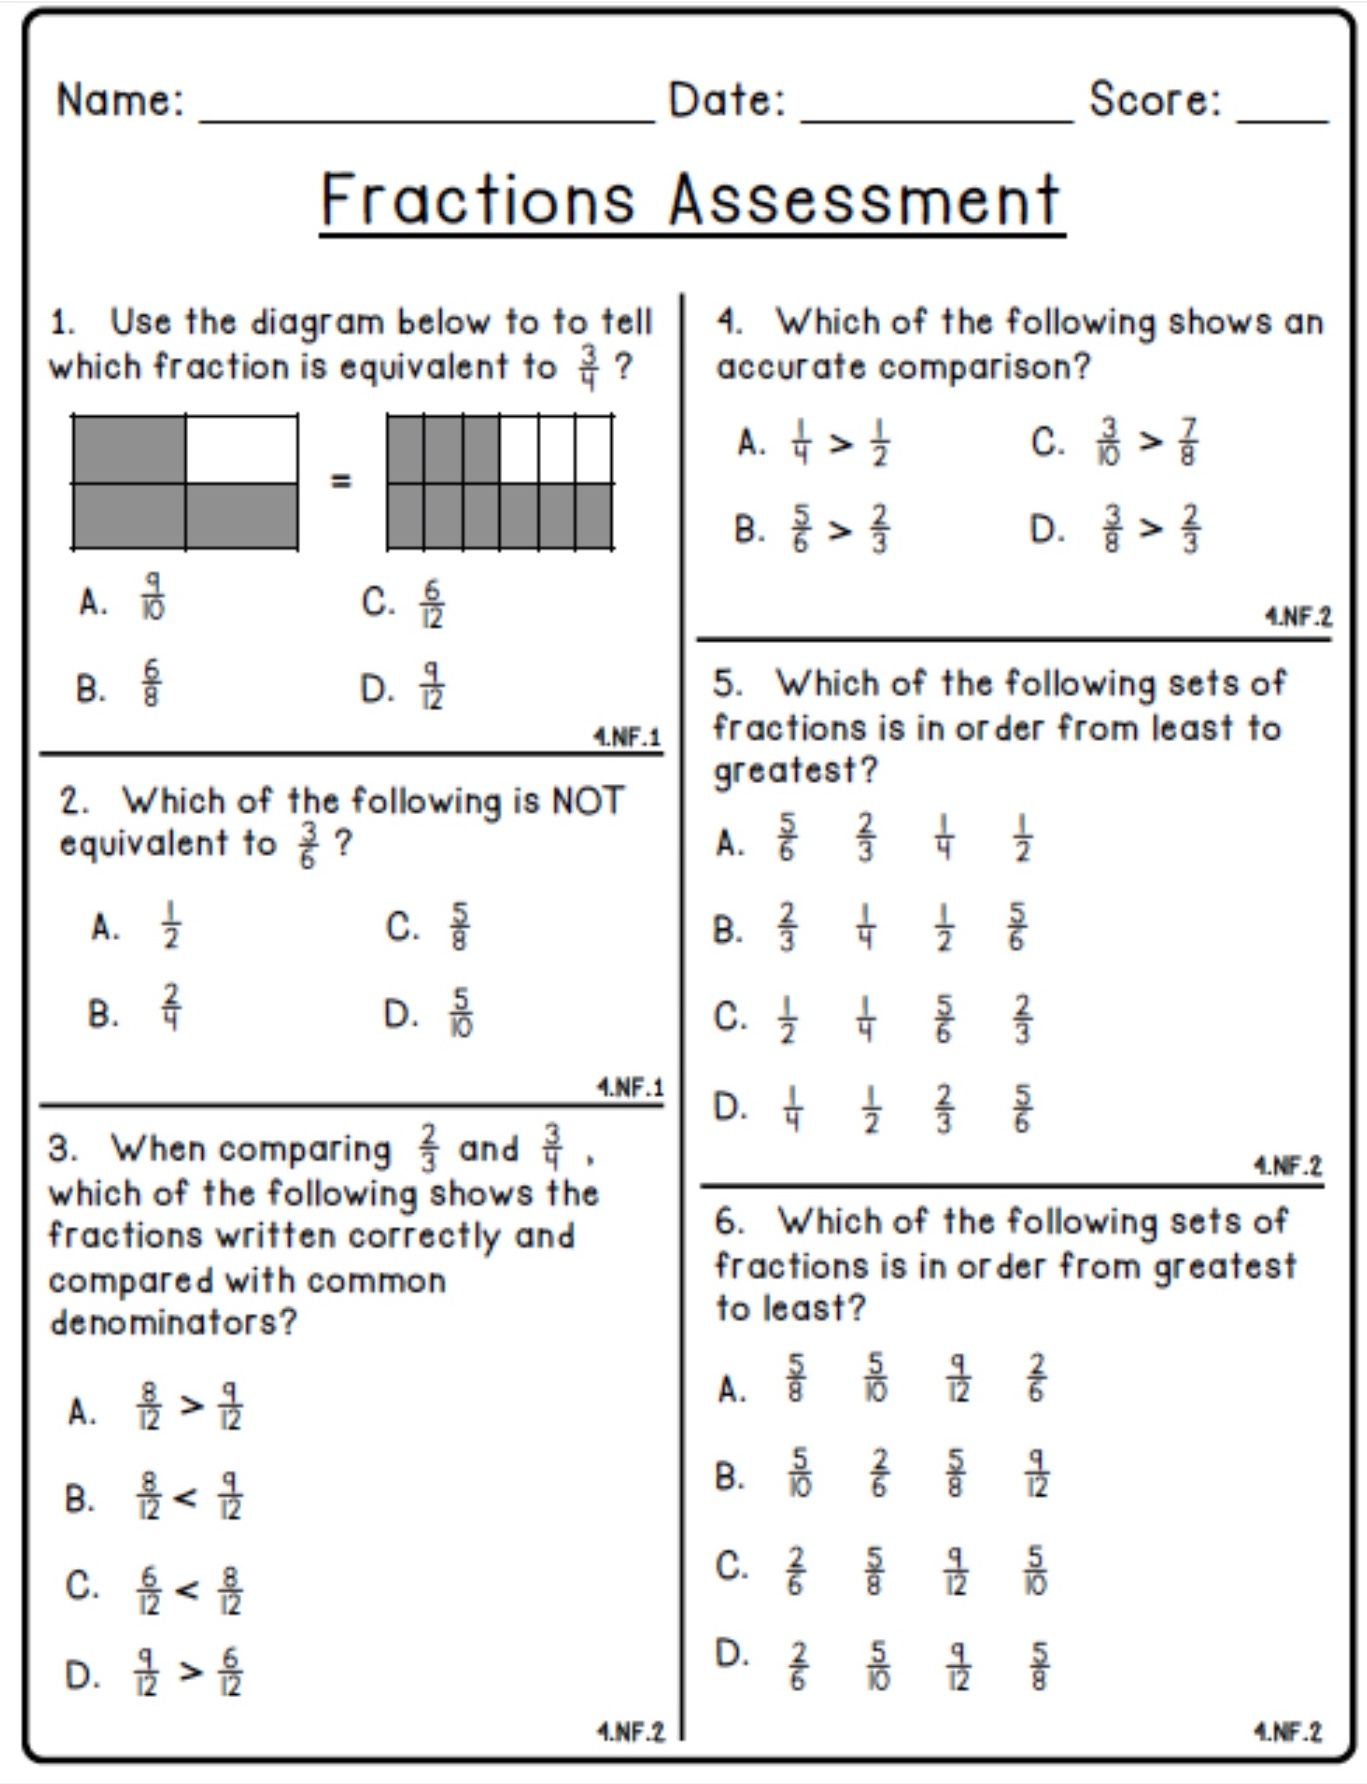 hight resolution of Envision Math 6th Grade Equivalent Fractions Worksheet With Answers    Printable Worksheets and Activities for Teachers